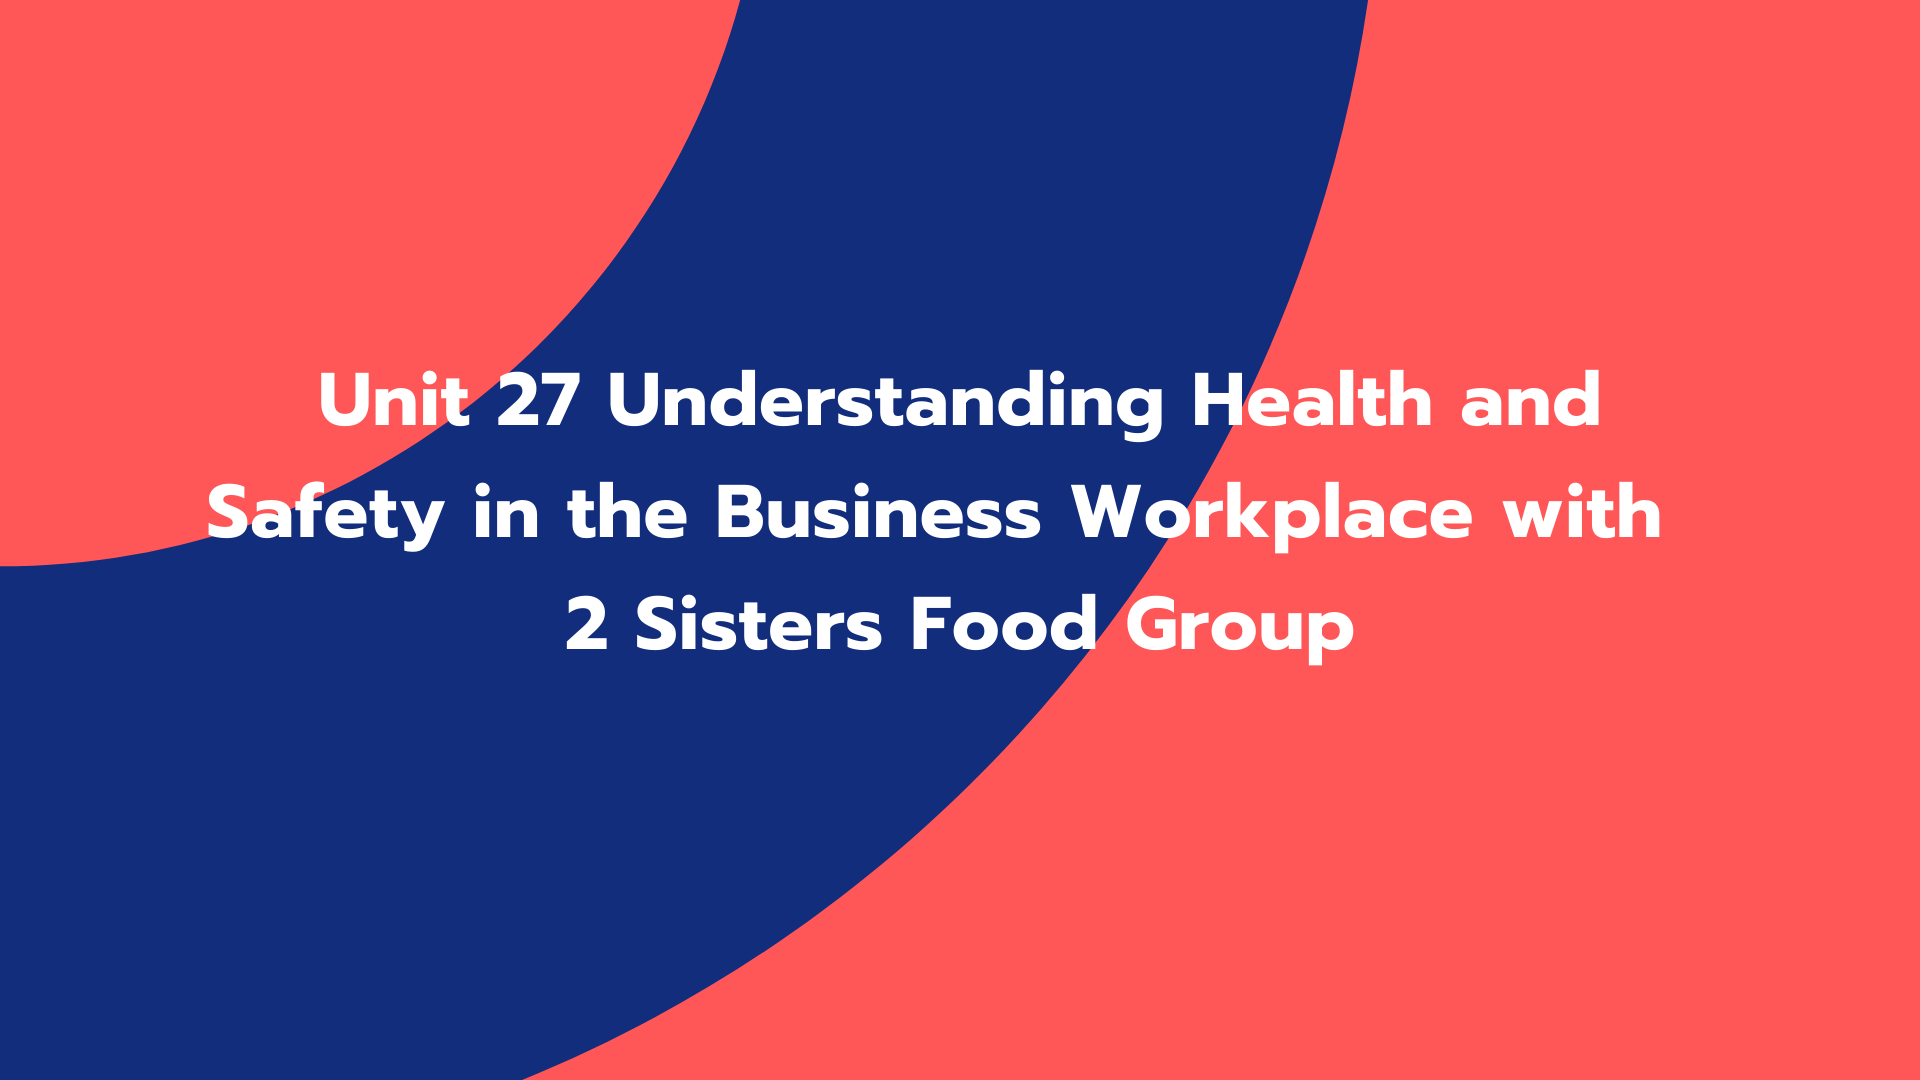 Unit 27 Understanding Health and Safety in the Business Workplace with 2 Sisters Food Group